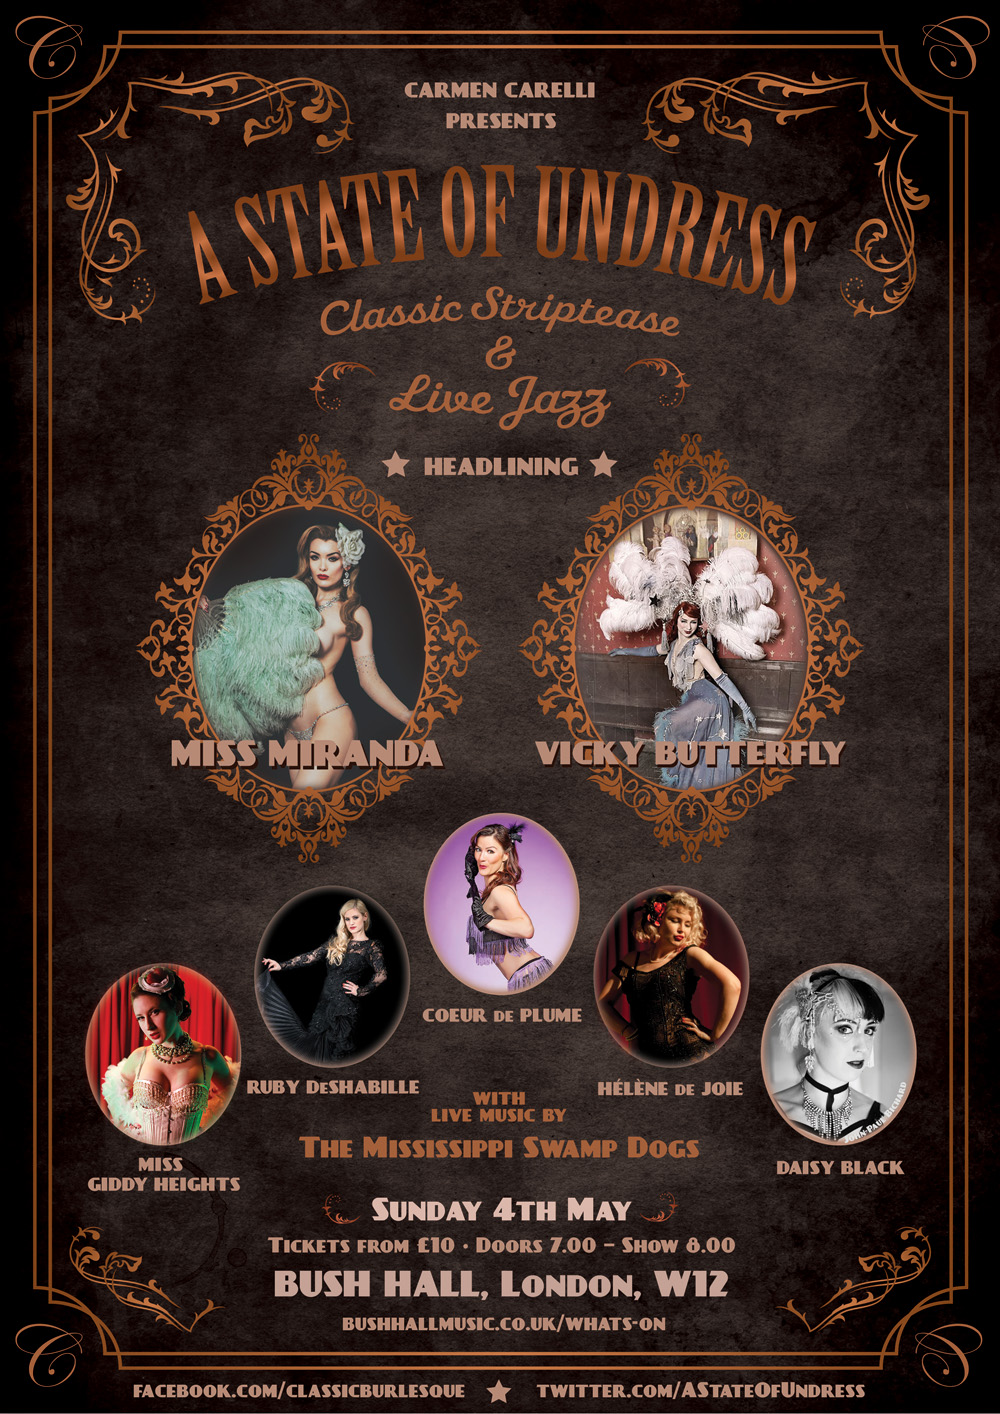 A poster for the The Swamp Dogs playing for a Burlesque Evening